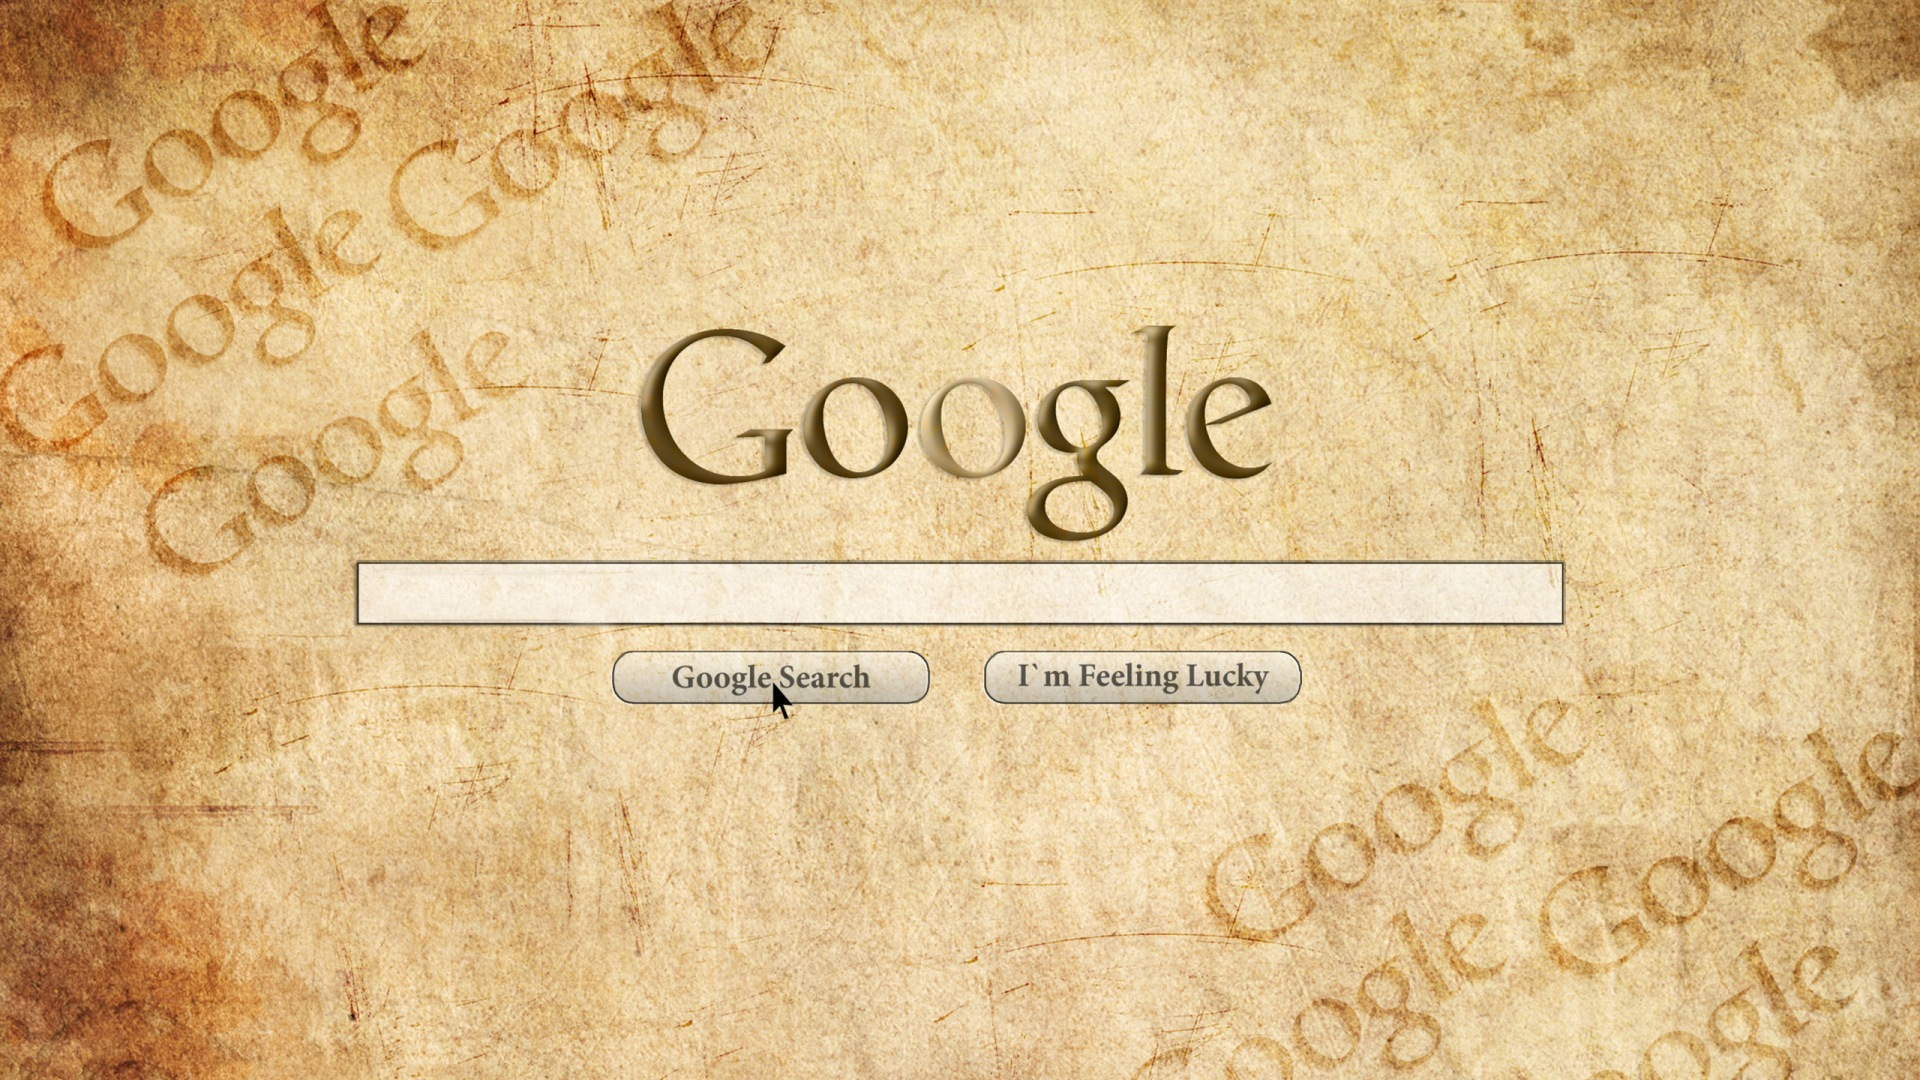 Google Images Wallpapers Free Hd Logo Search Engine